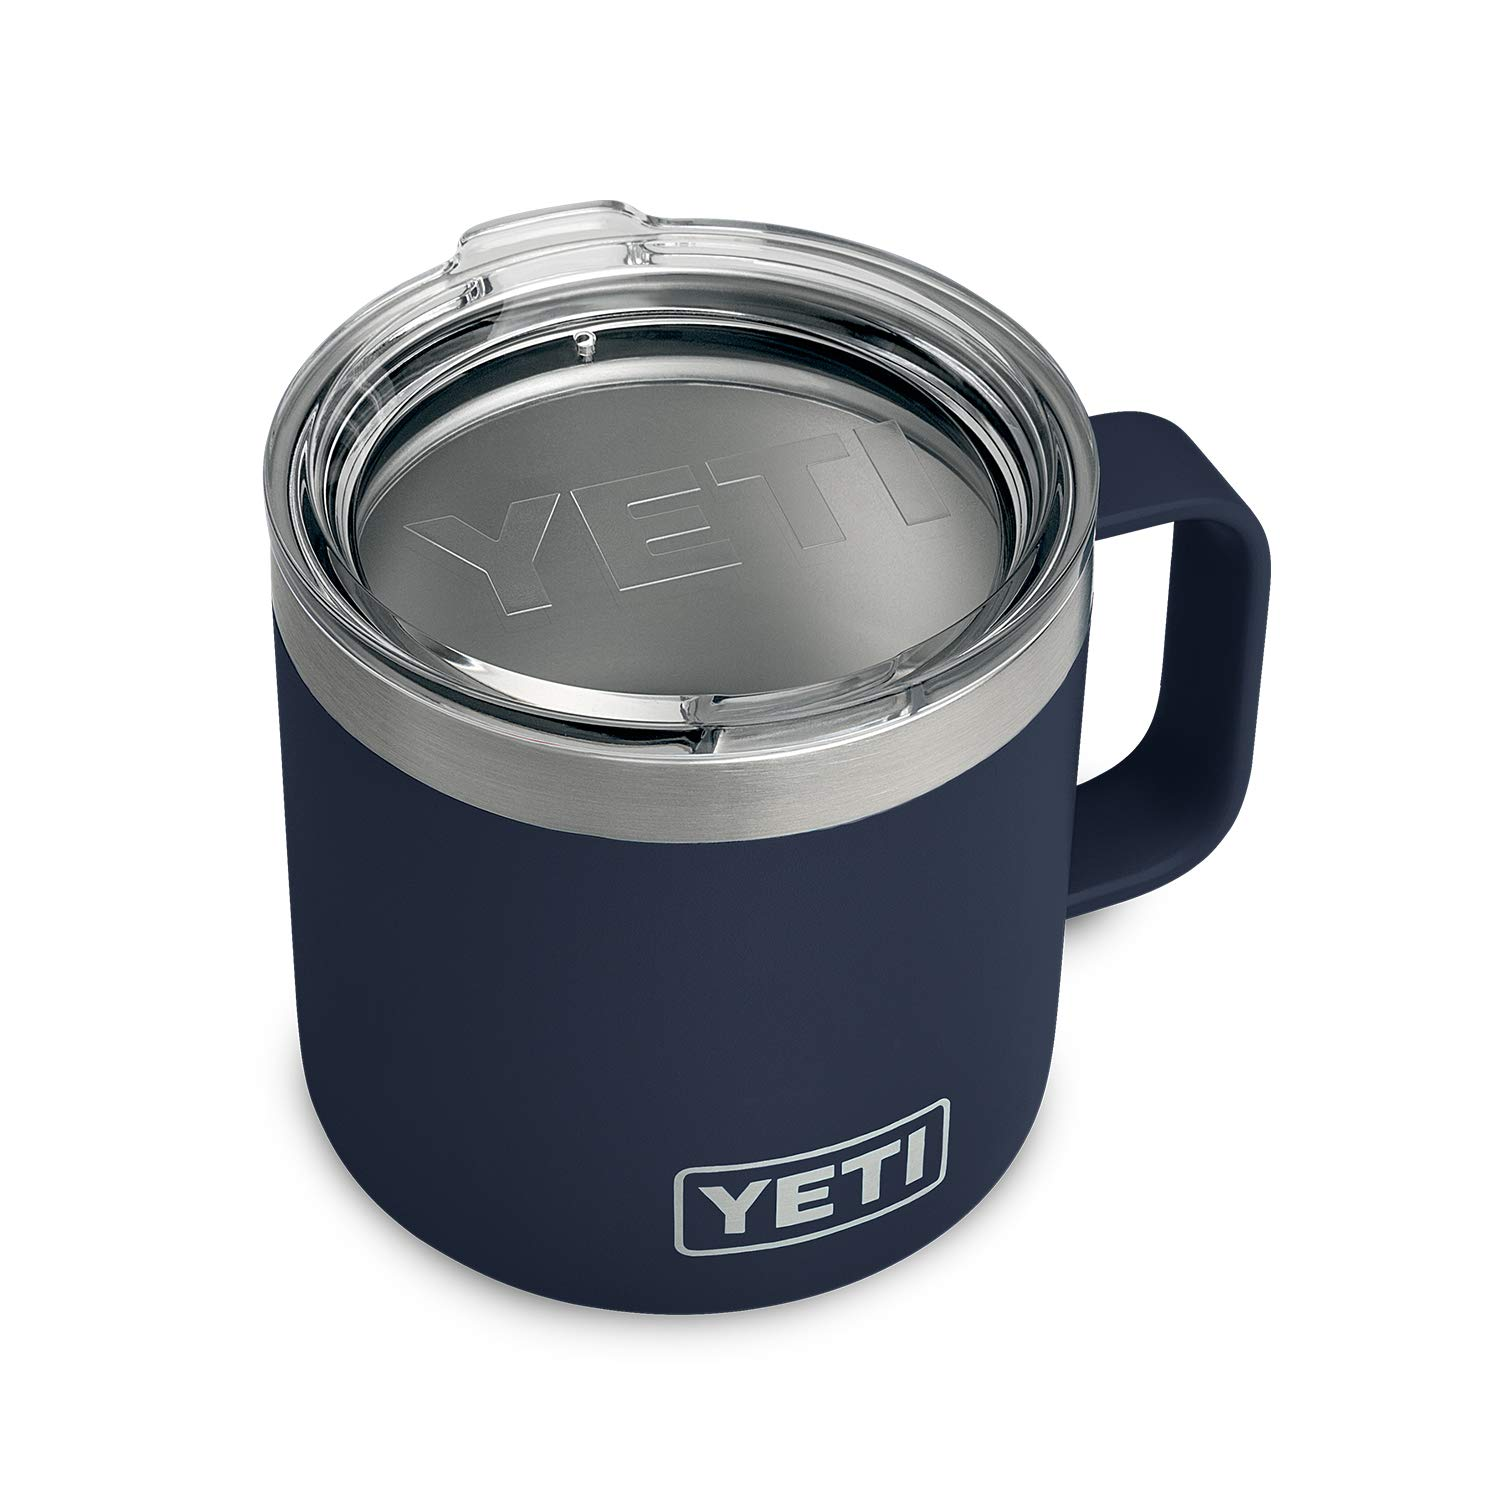 Navy Blue Yeti Insulated Mug - Come discover 15 Eclectic Holiday Gifts Under $25 plus Holiday Gift Guides from 7 of Your Favorite Bloggers!